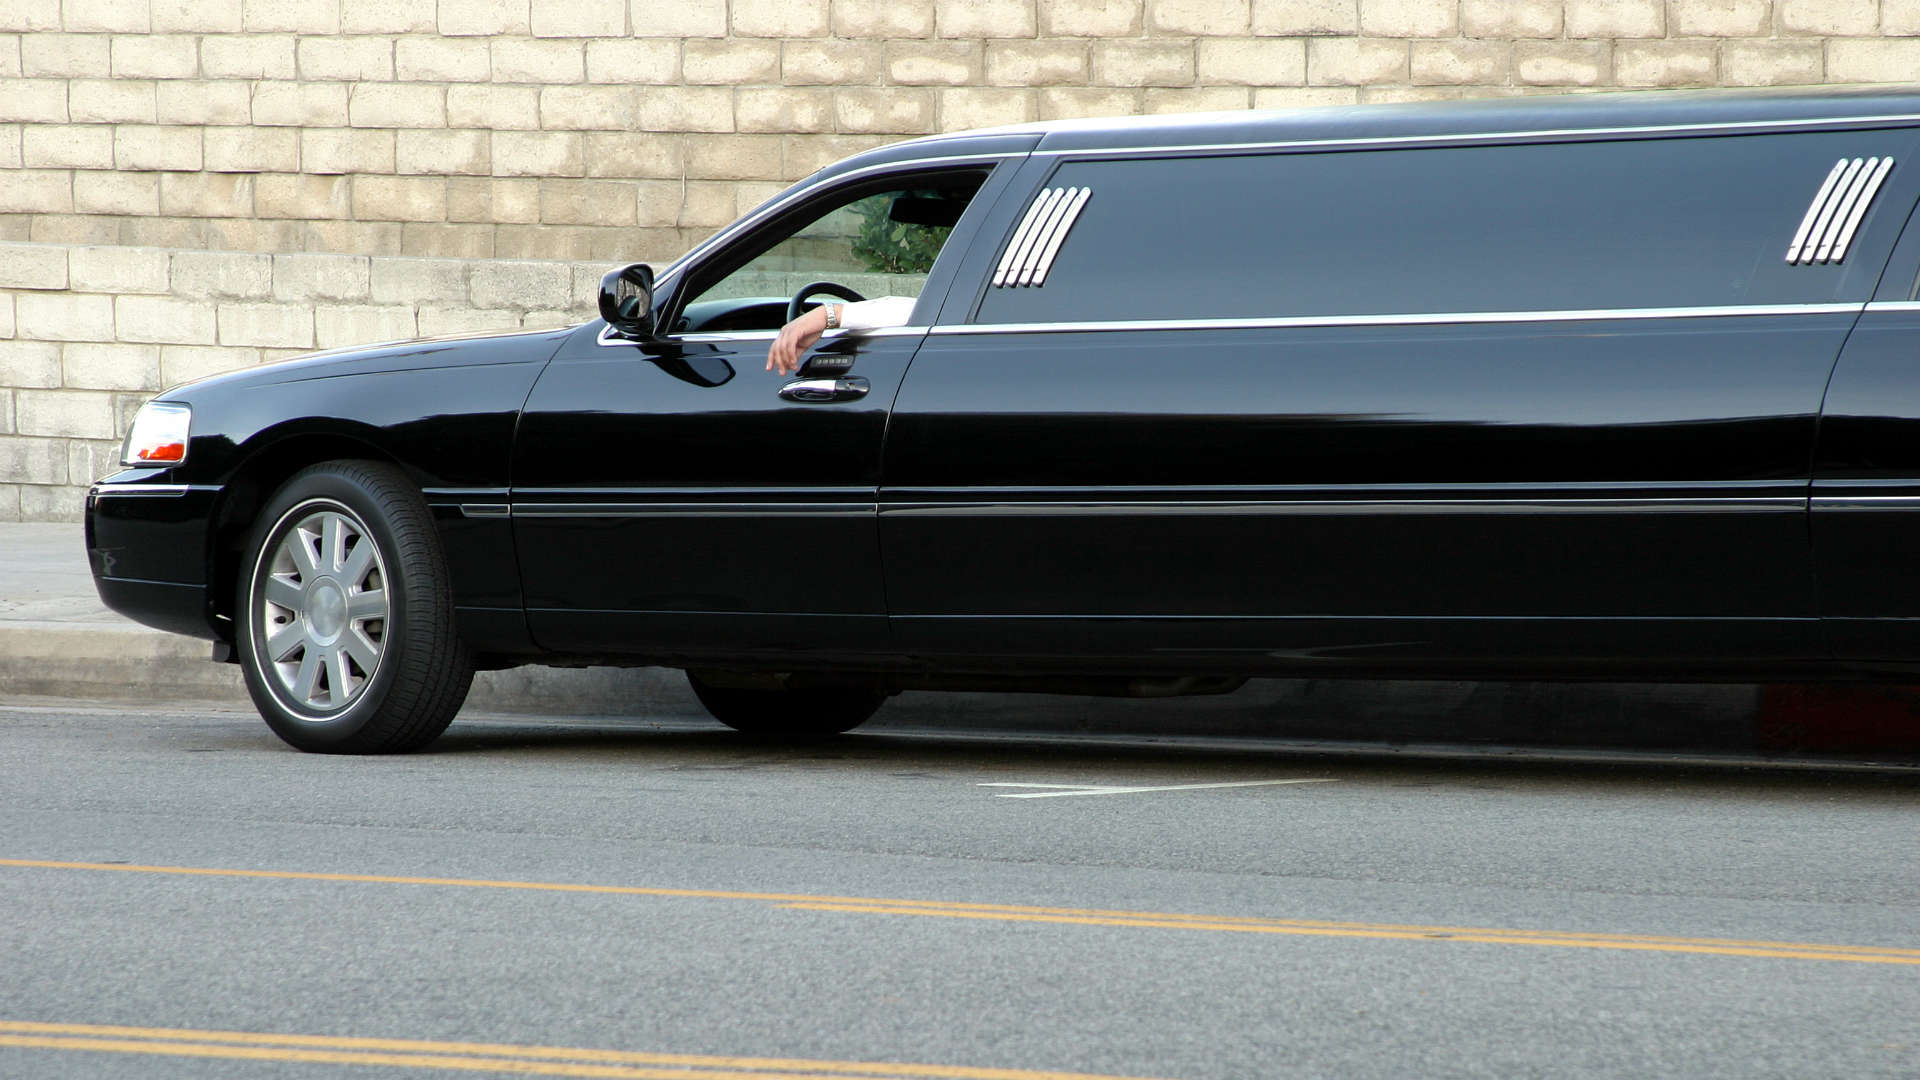 How to check the safety of your promo limo hire car